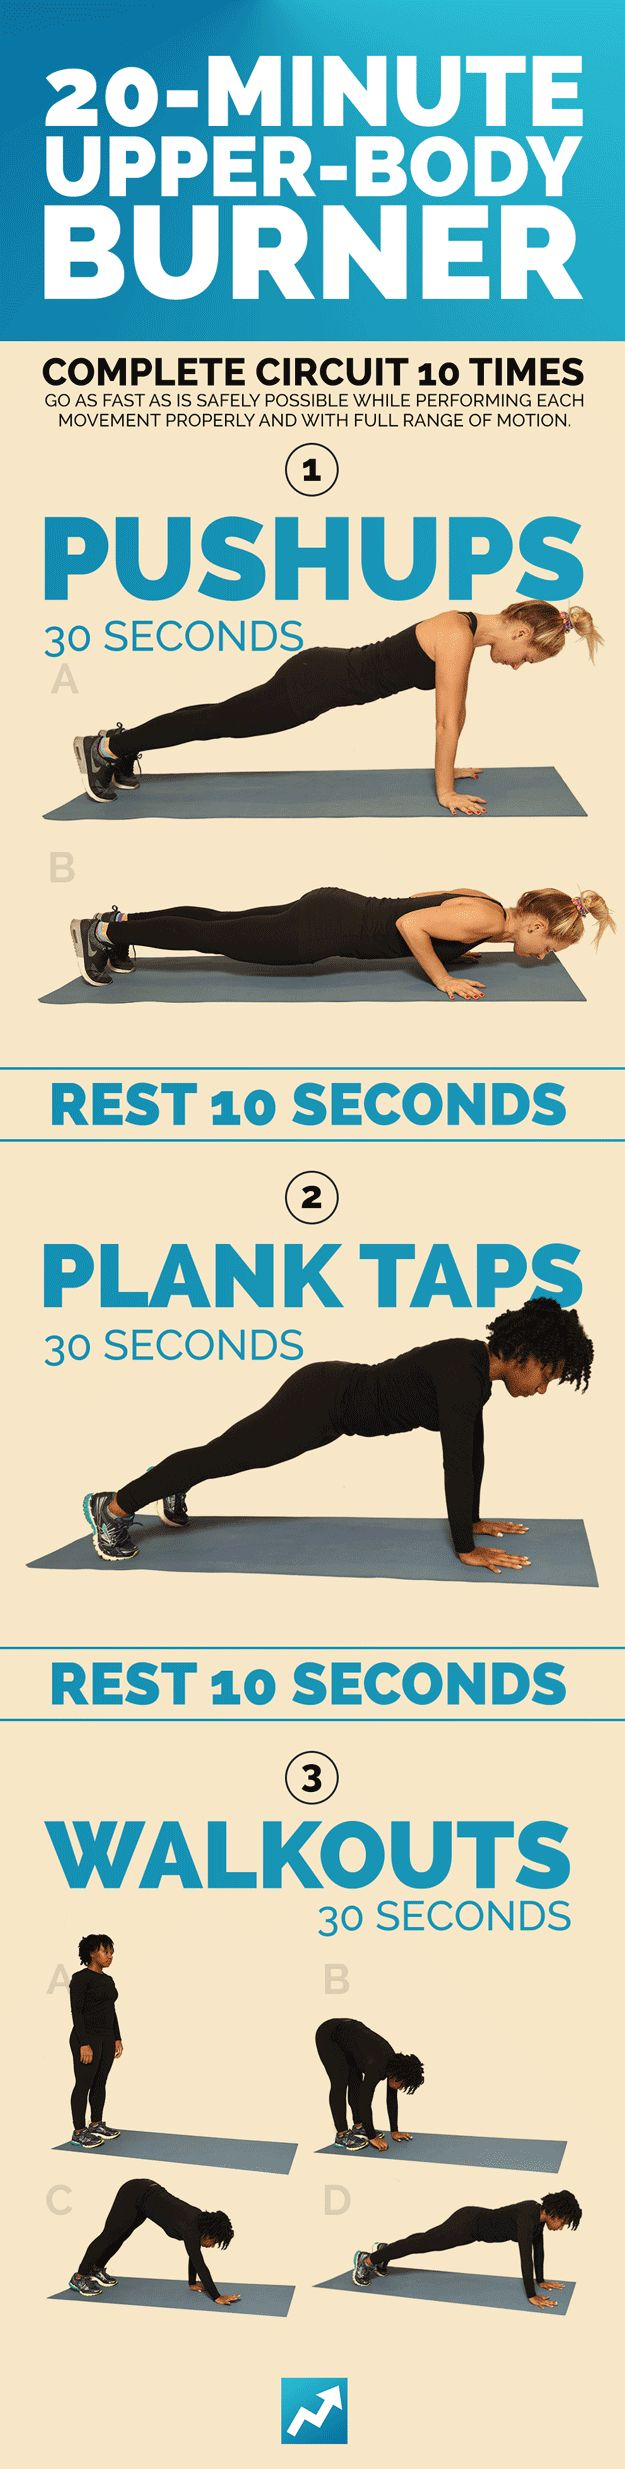 Upper-Body Workout: | Take BuzzFeed's Get Fit Challenge, Then Take Over The World